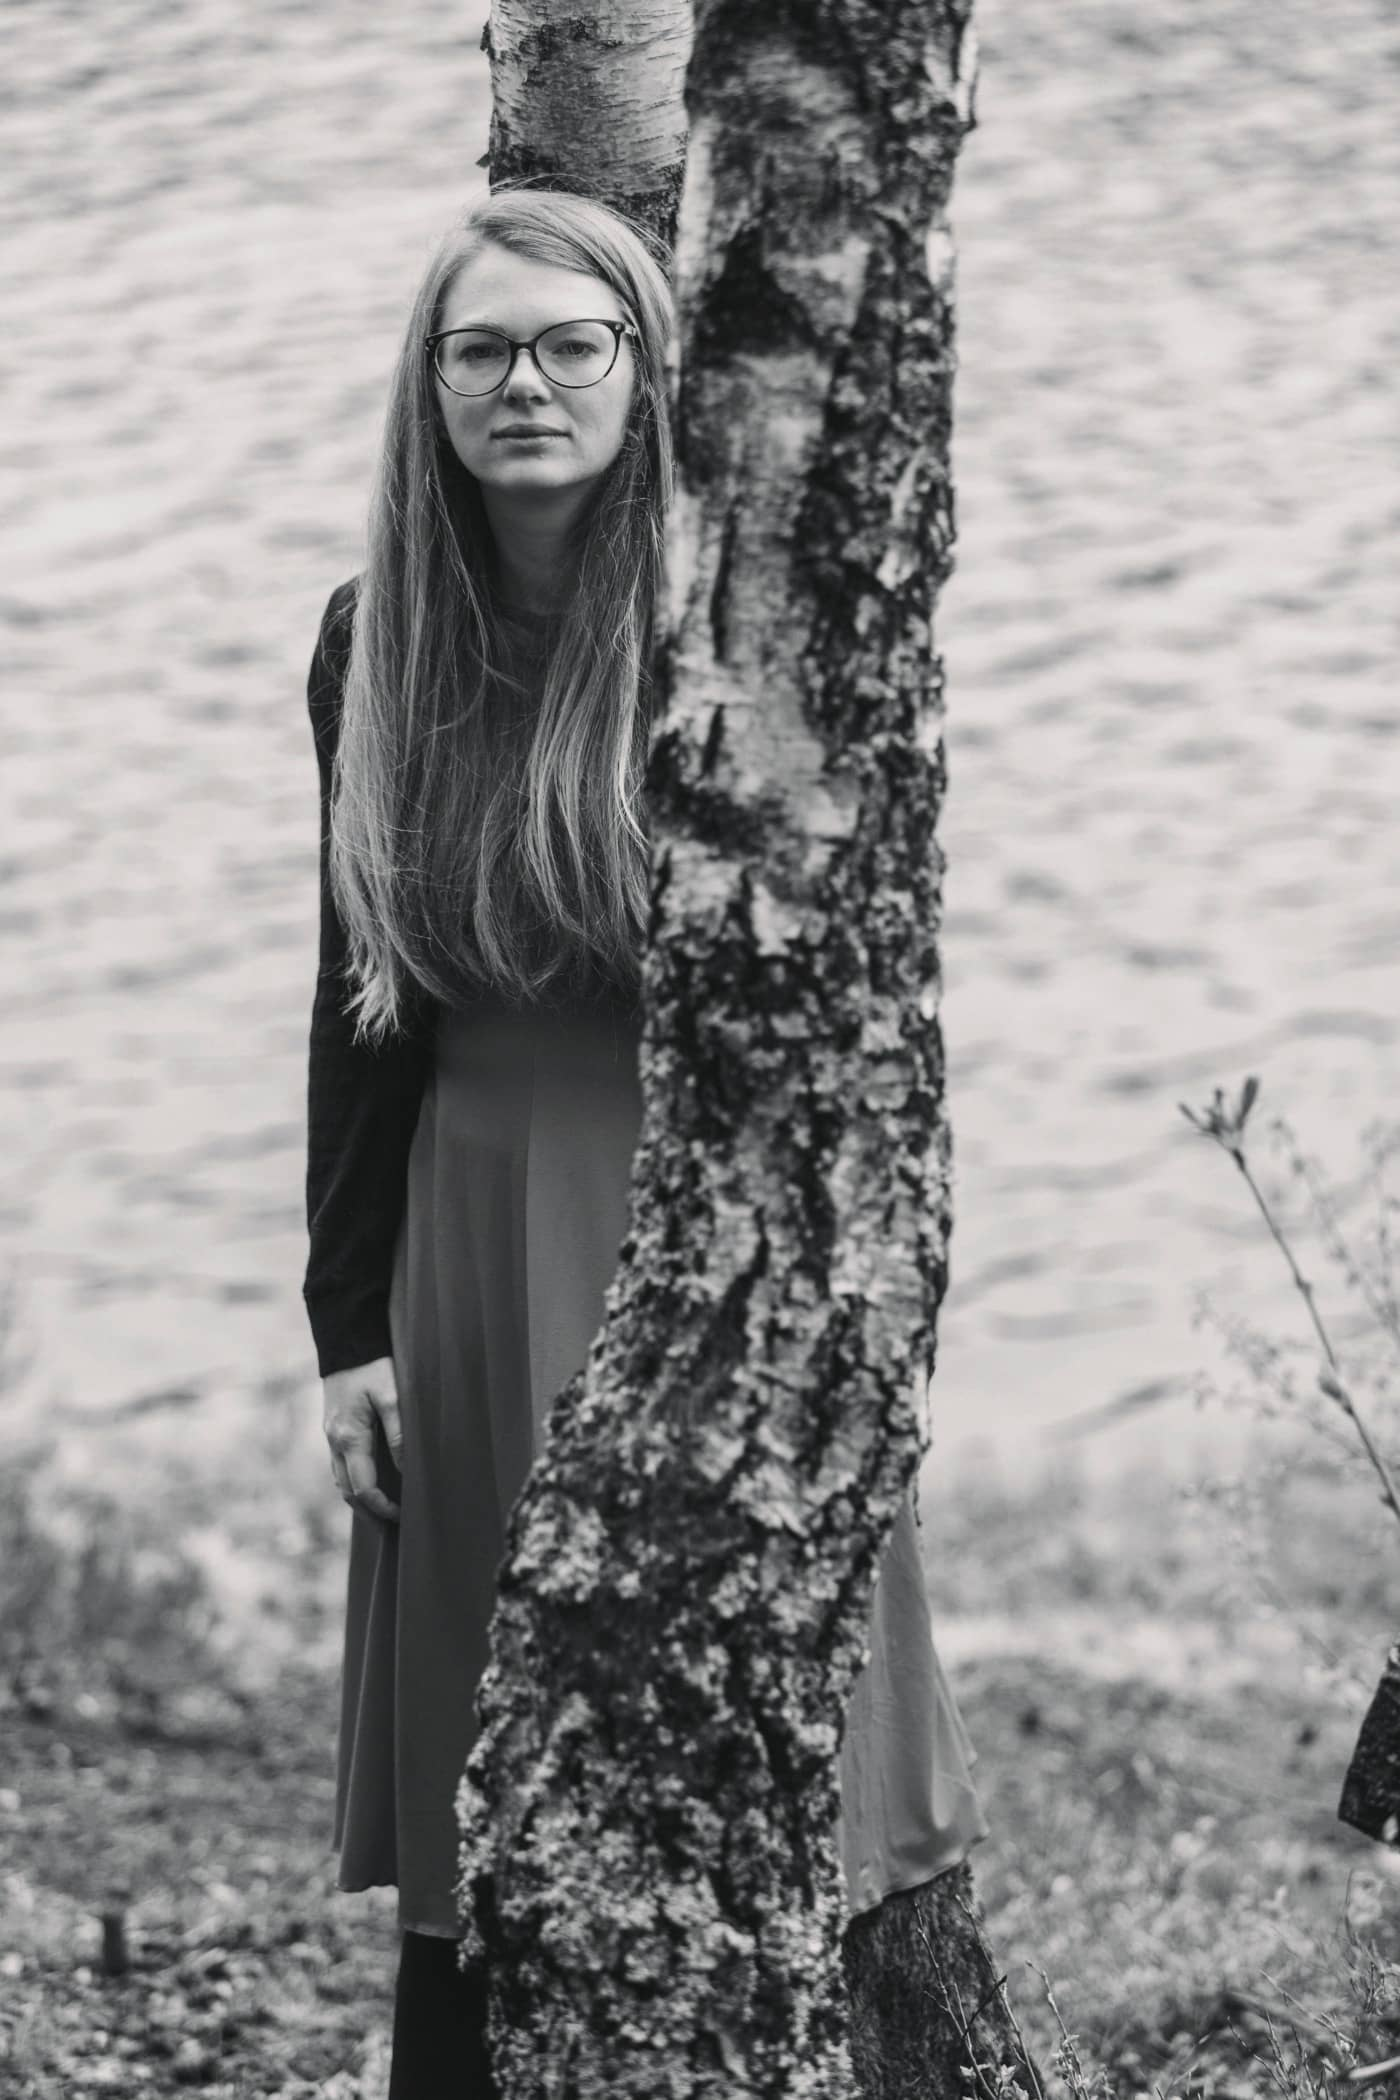 Long hair, Monochrome photography, Fashion, Eyewear, Beauty, Standing, Tree, Black-and-white, Photograph